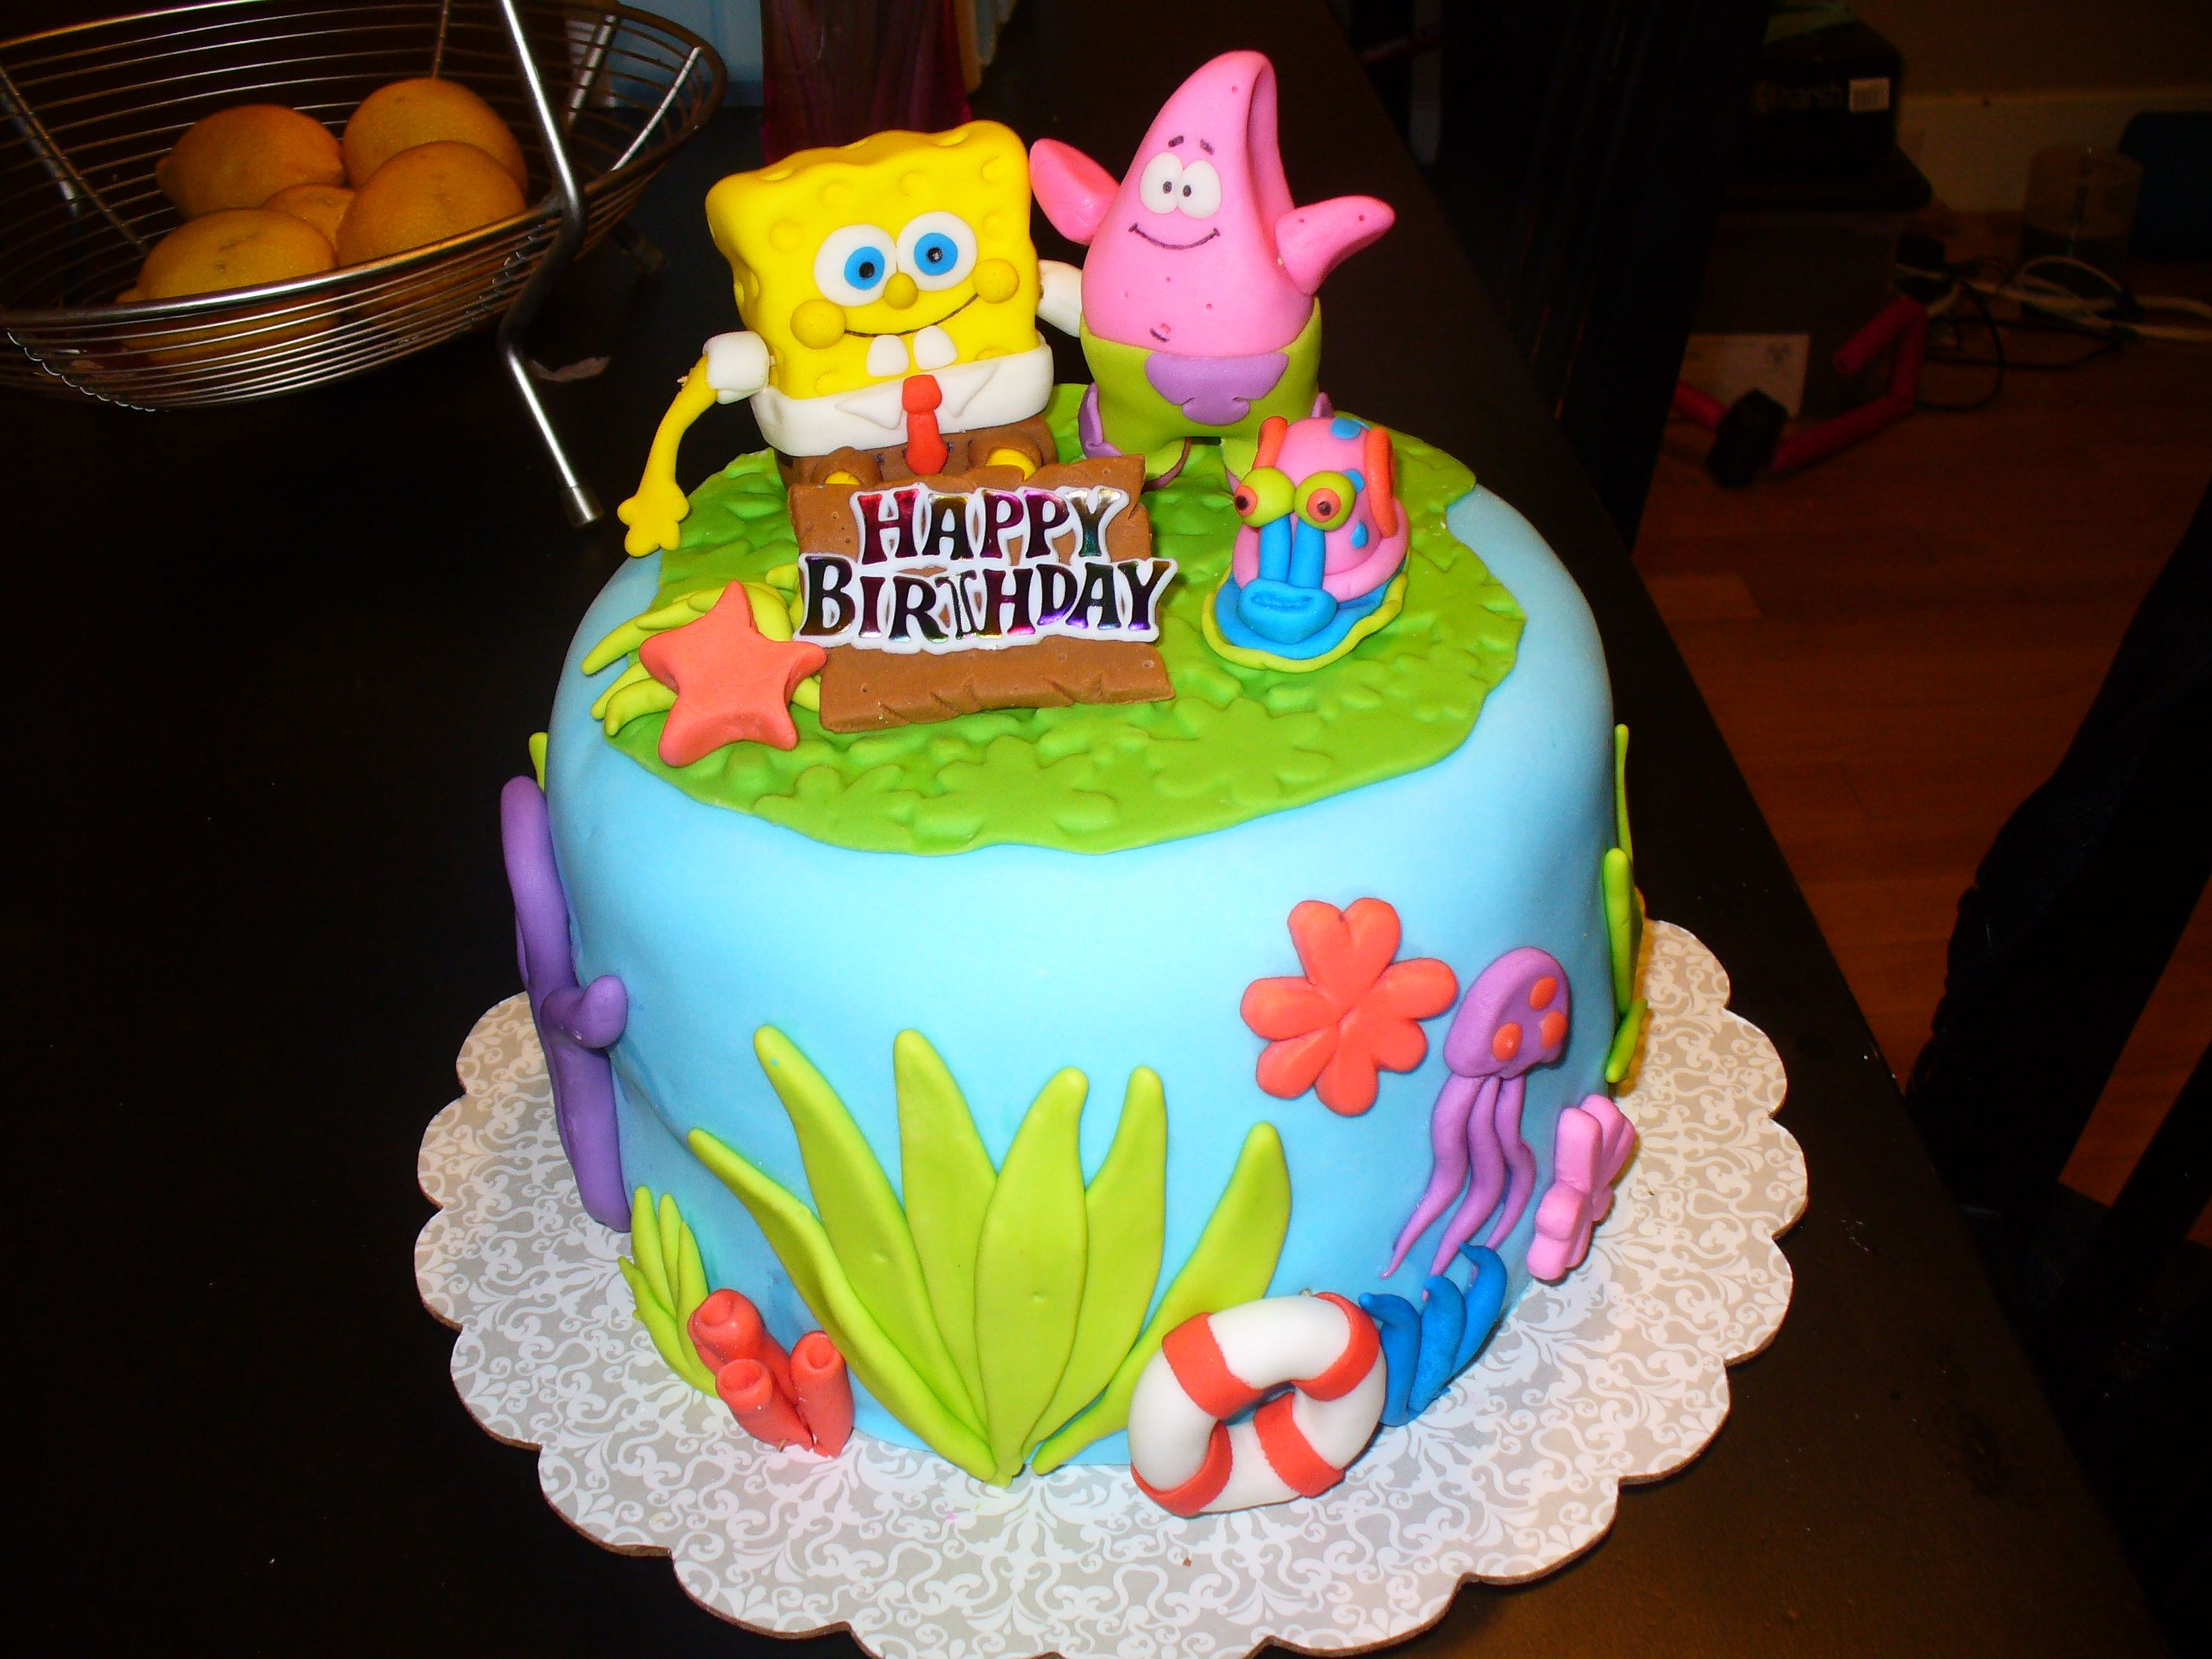 Spongebob Squarepants Birthday Cake HAPPY CAKES Pinterest - Happy birthday bob cake